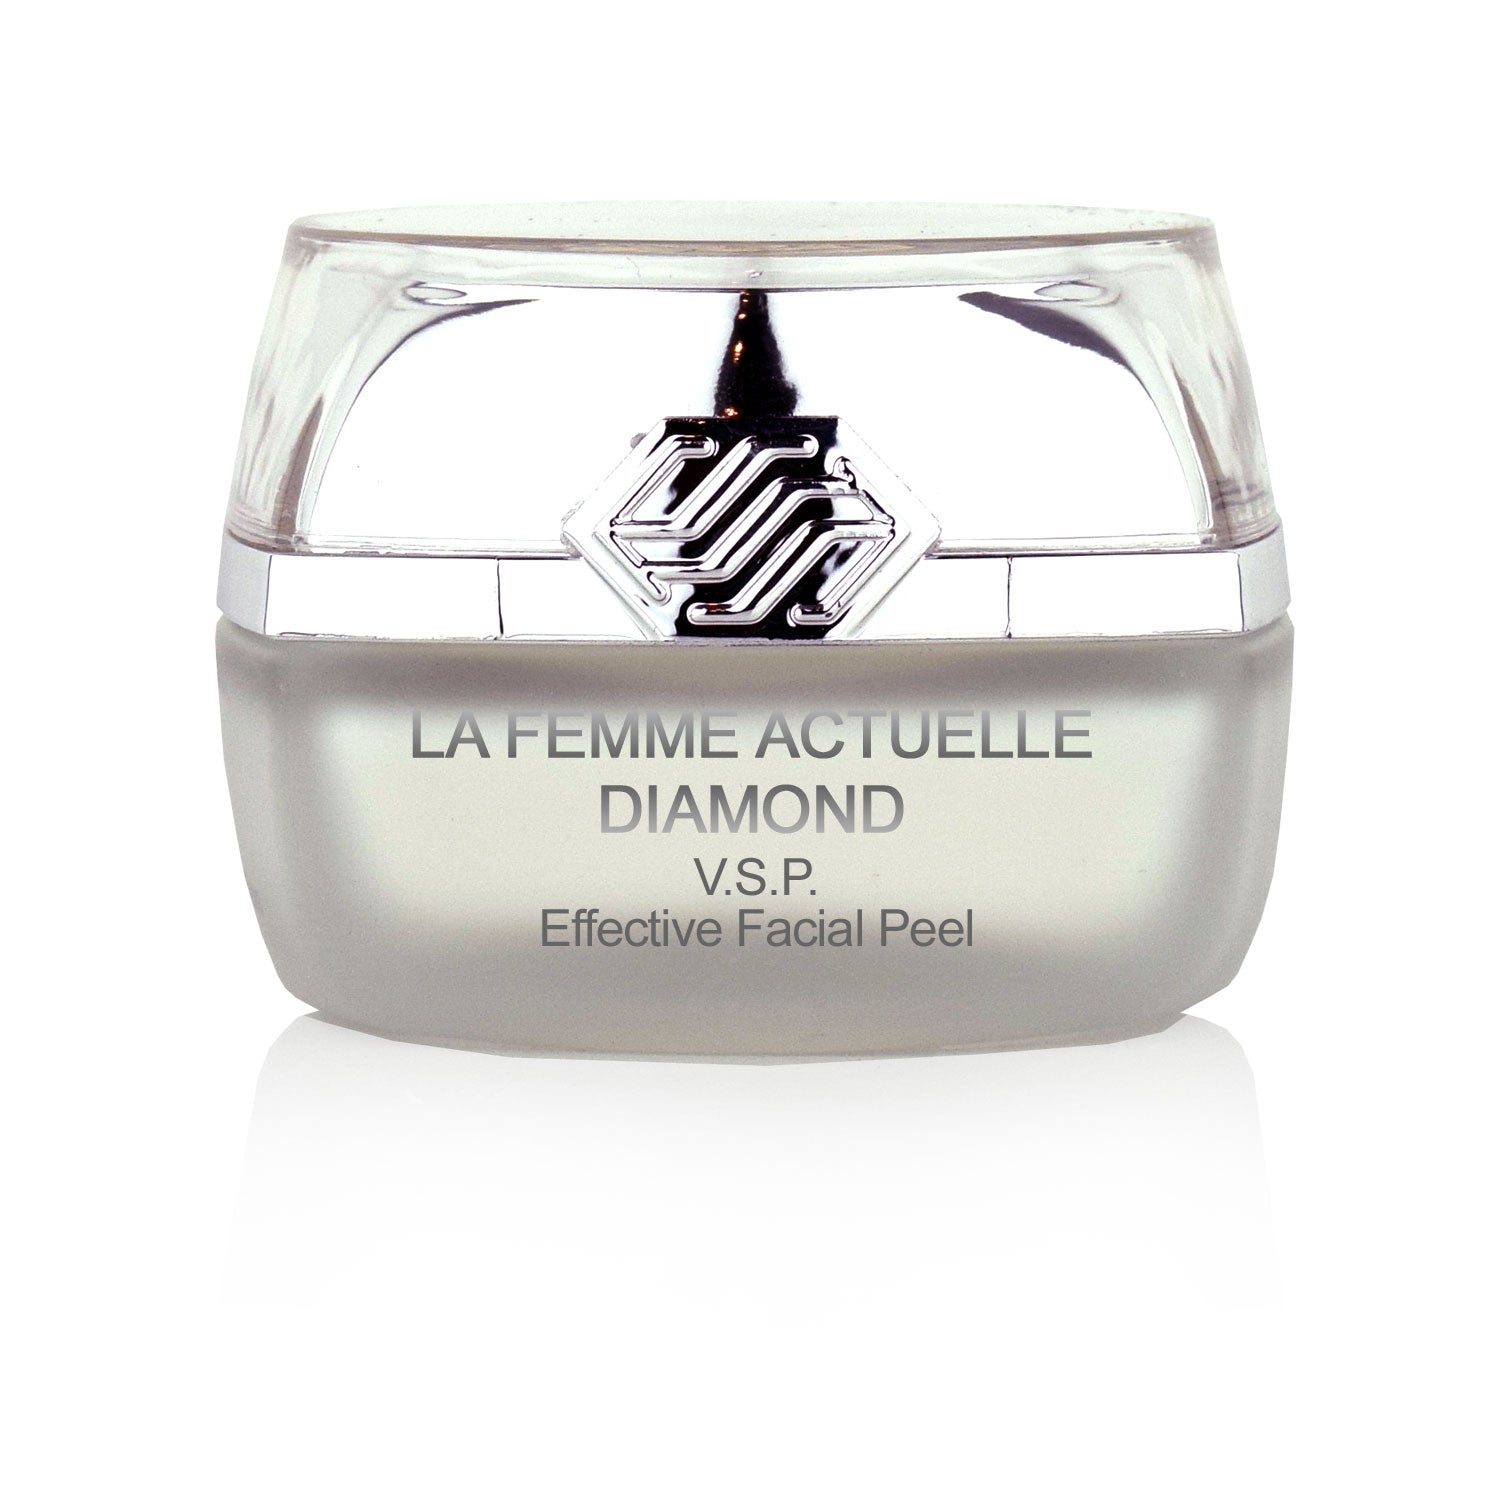 La Femme Diamond Effective Facial Peeling